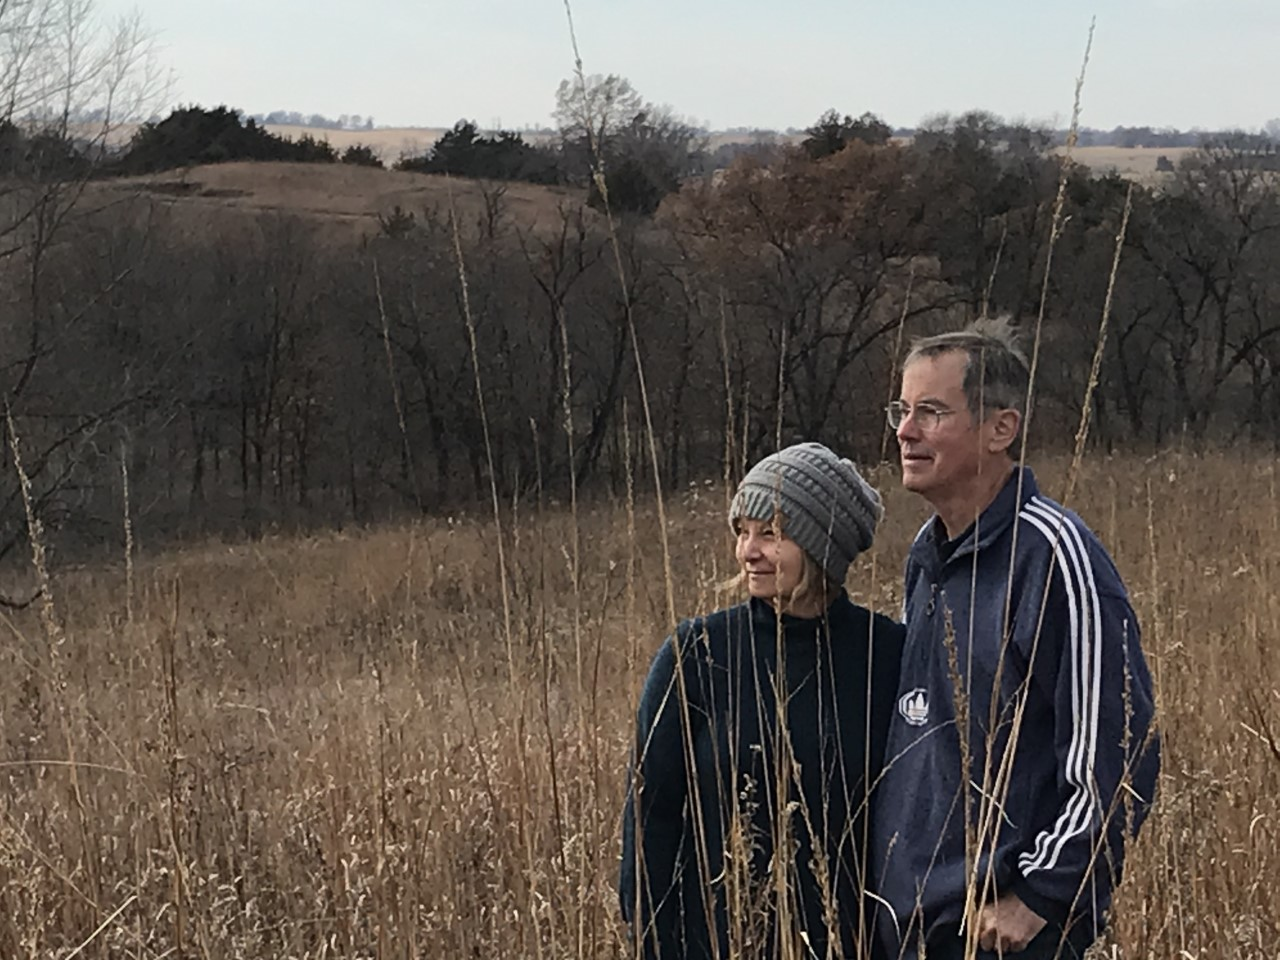 Patti and Ray Hamilton have spent the last 35 years restoring native prairie at Codfish Hollow Hill.